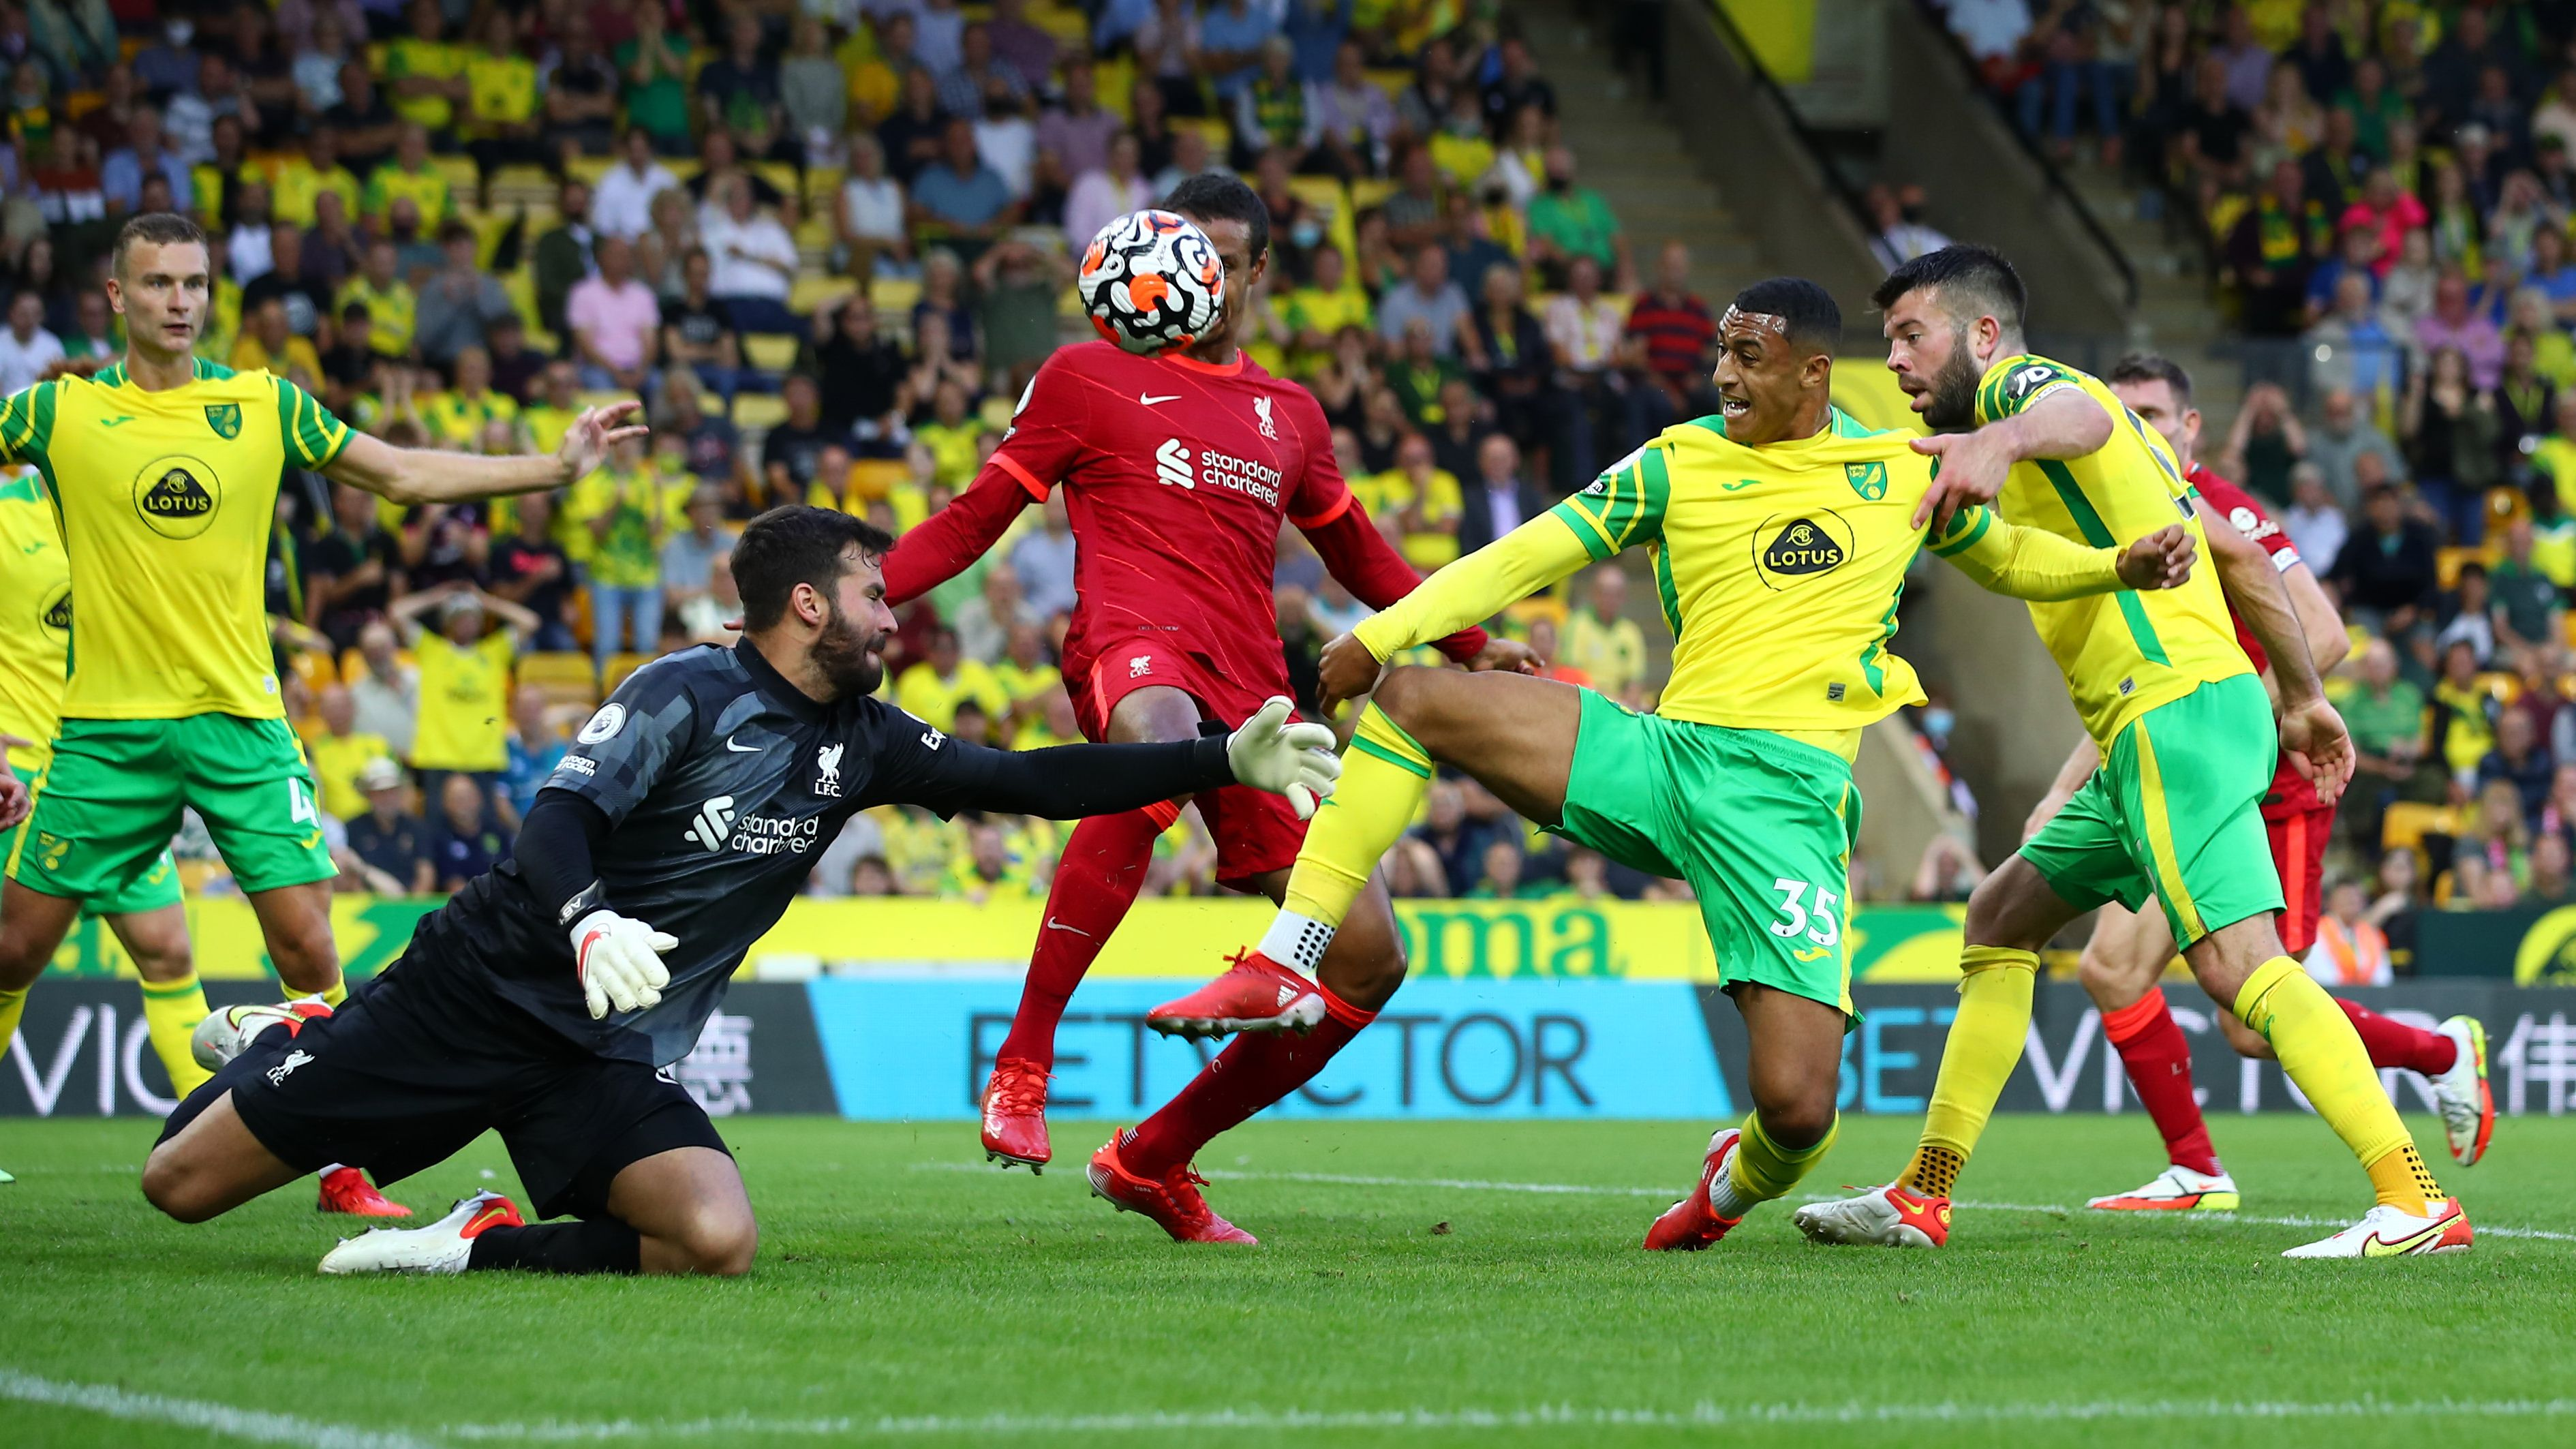 match-preview-norwich-city-v-liverpool-carabao-cup